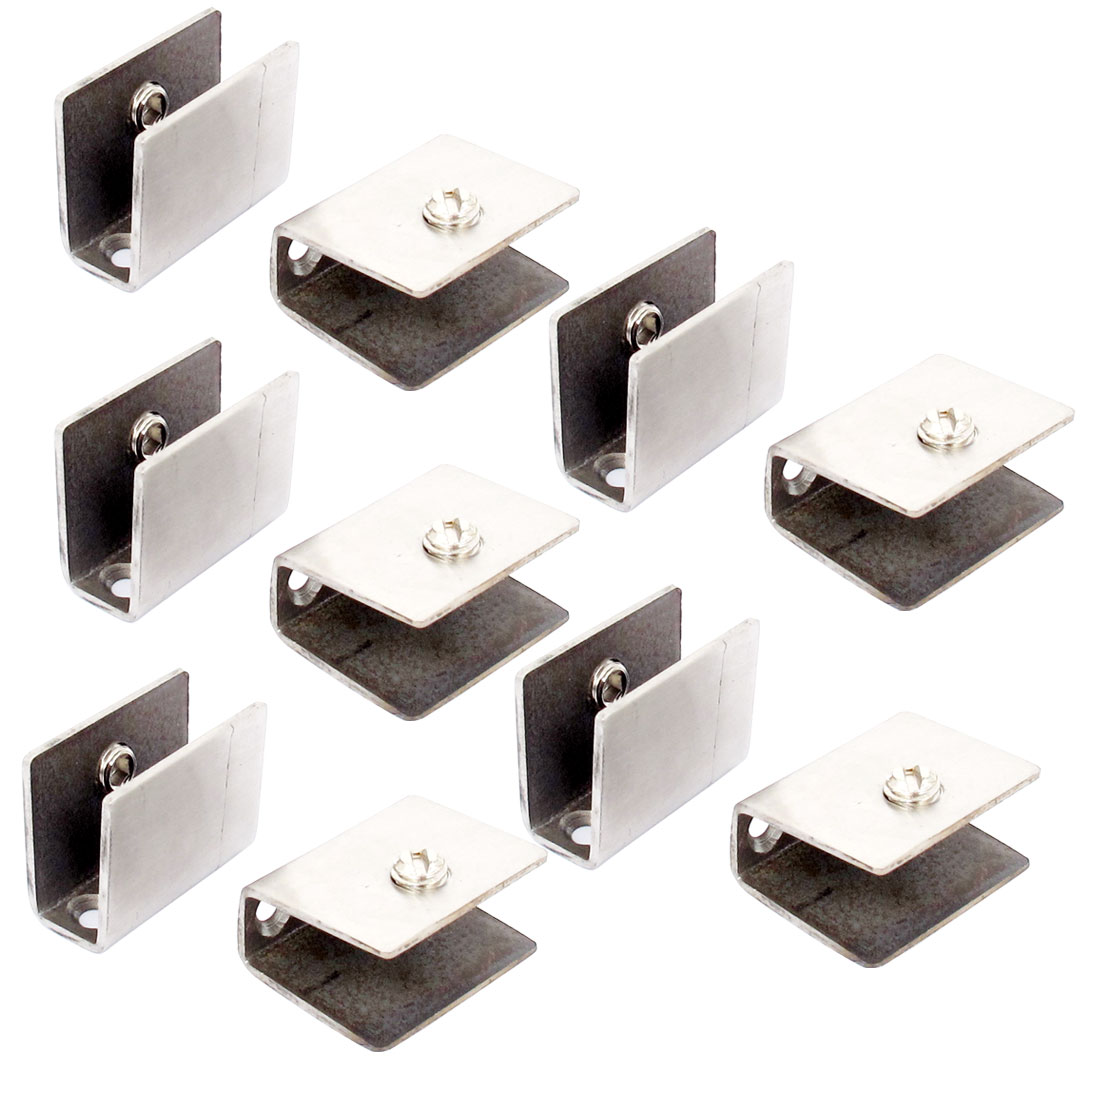 11mm-13mm Thickness Adjustable Rectangle Style Glass Clip Clamp 10pcs